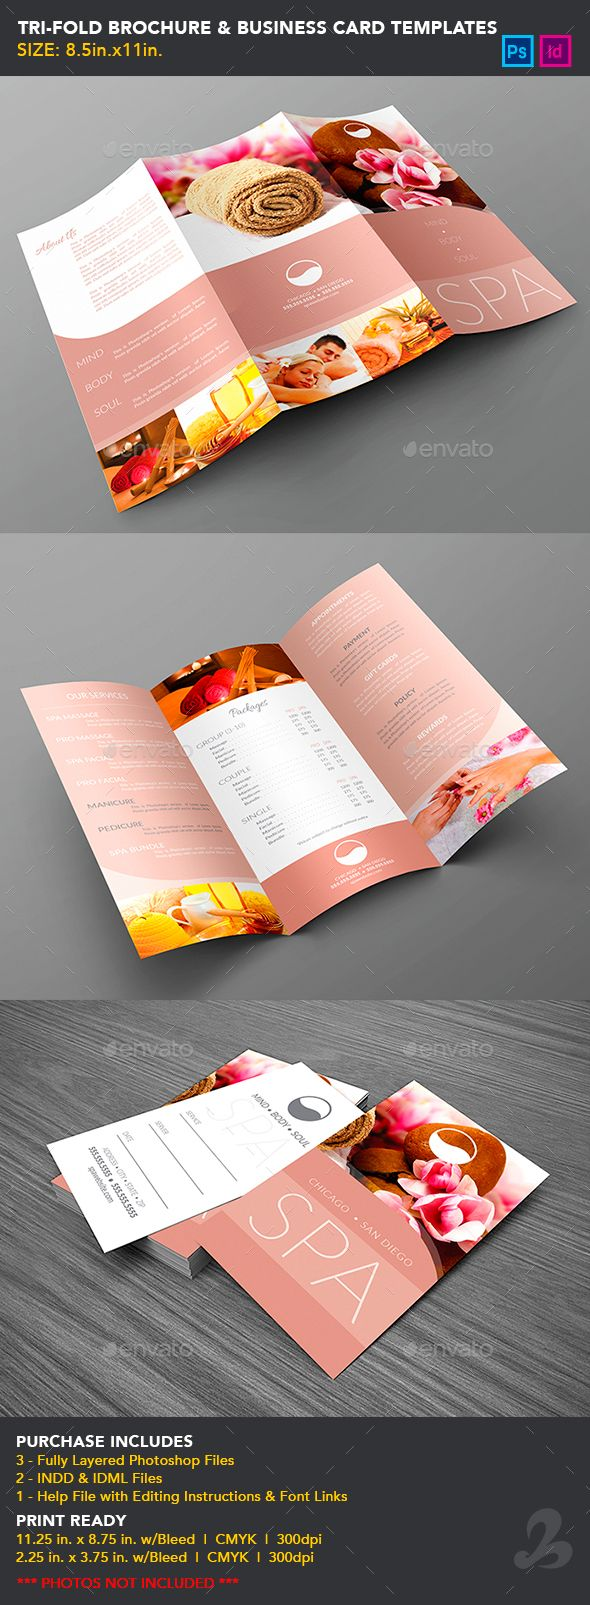 Tri-Fold Brochure & Business Card Templates - Spa | Tri fold ...